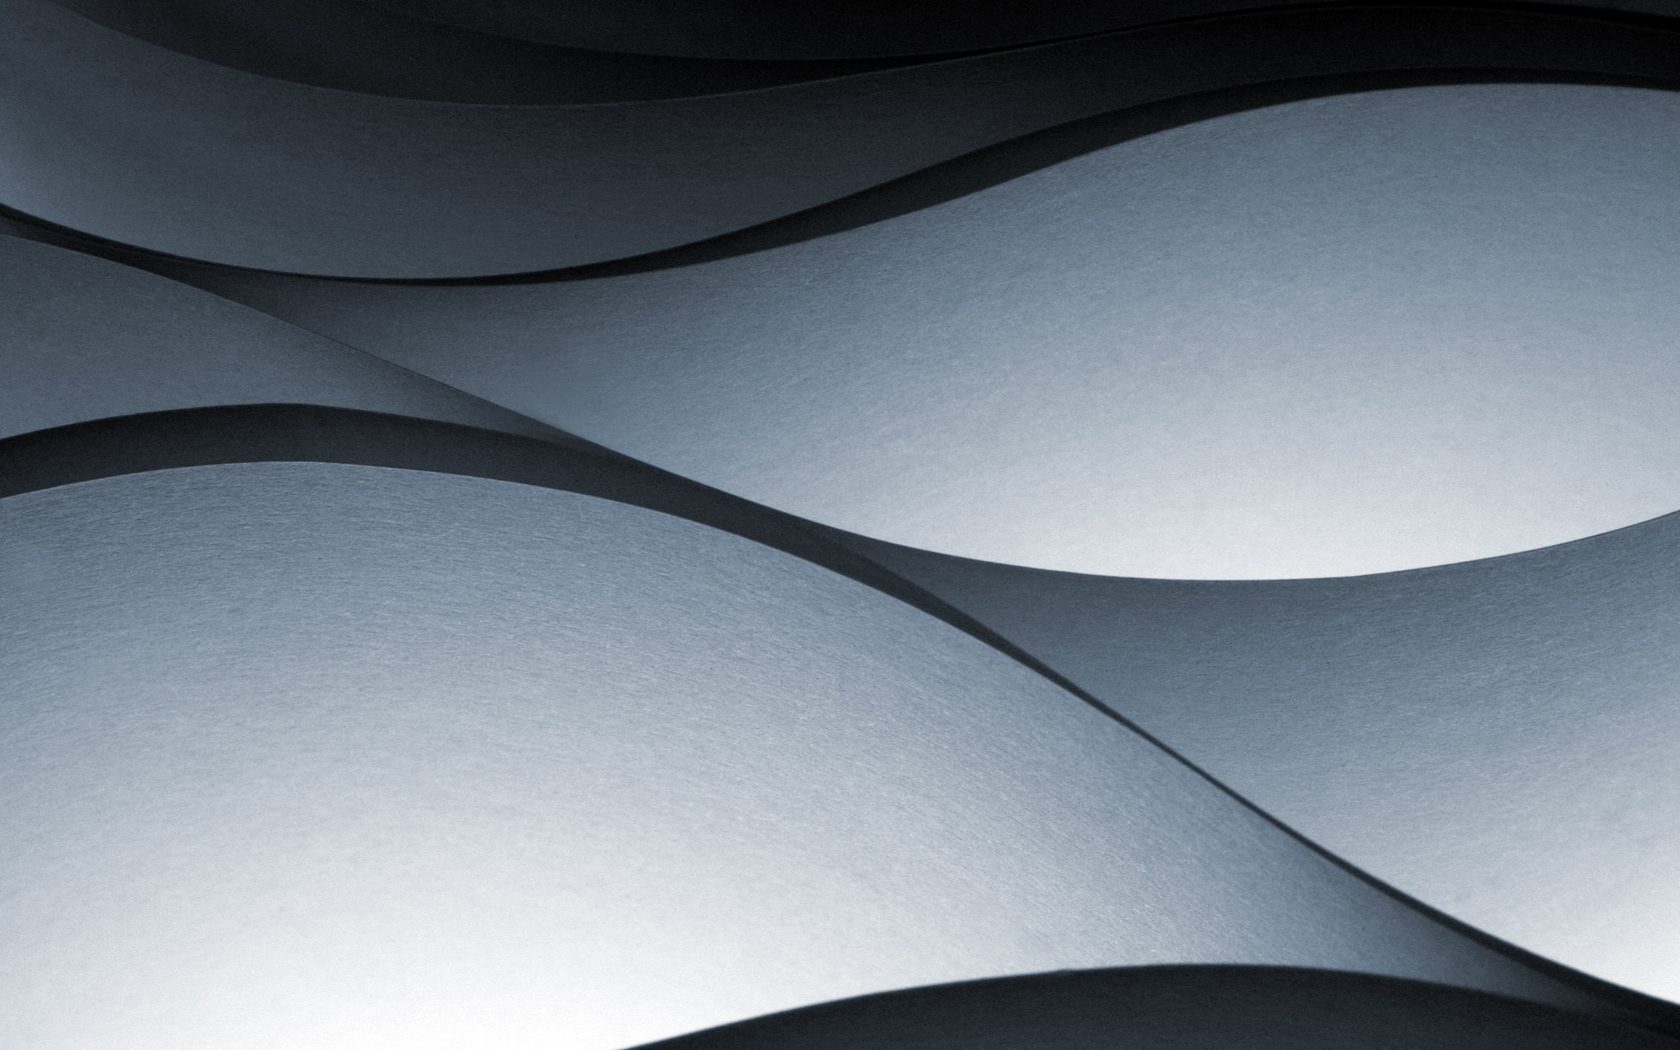 Wallpaper for Mac OS Tiget - abstraction